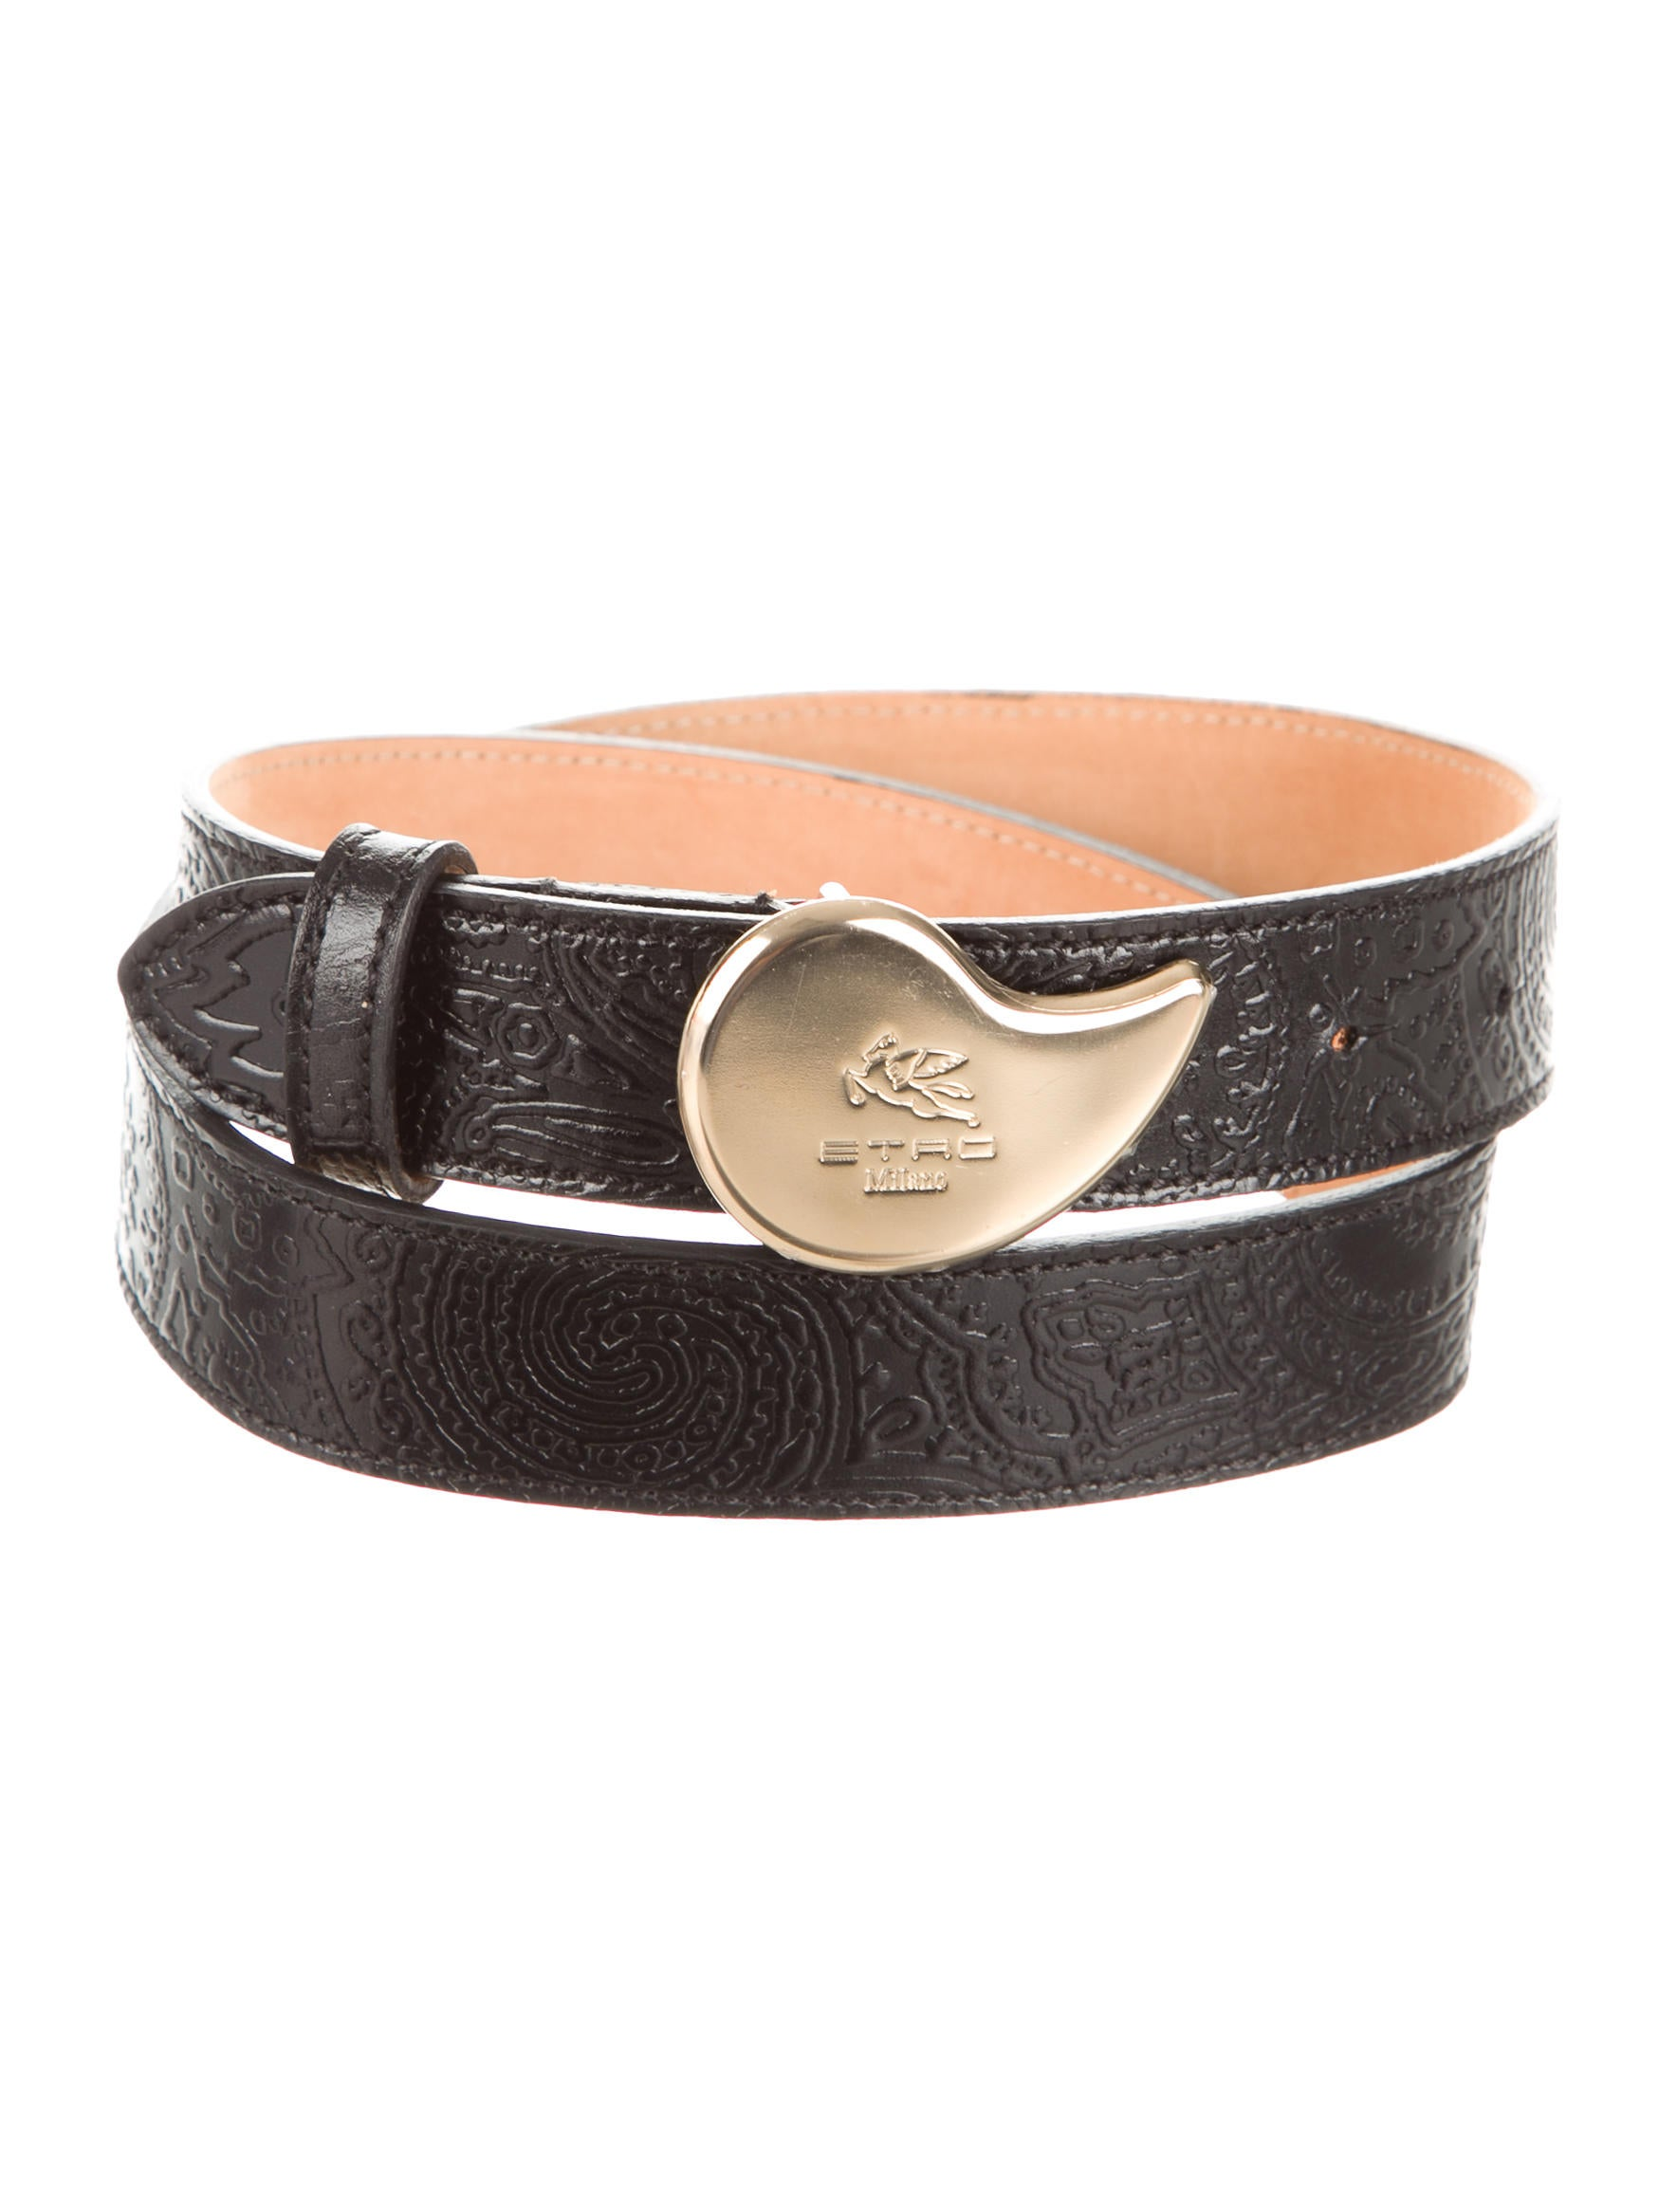 etro embossed leather belt accessories etr39853 the